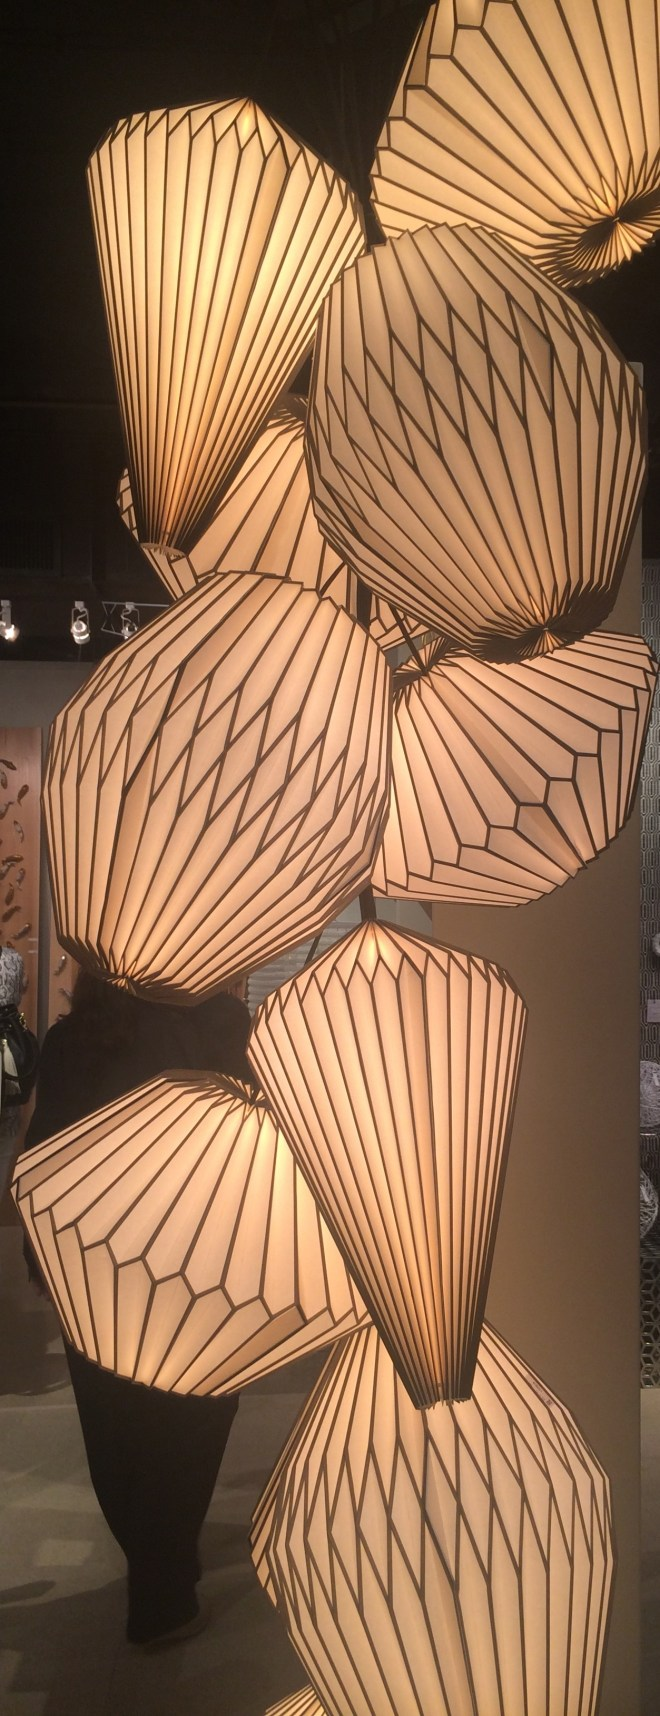 paper lanterns - on sale - get a few and group them up!  great gift